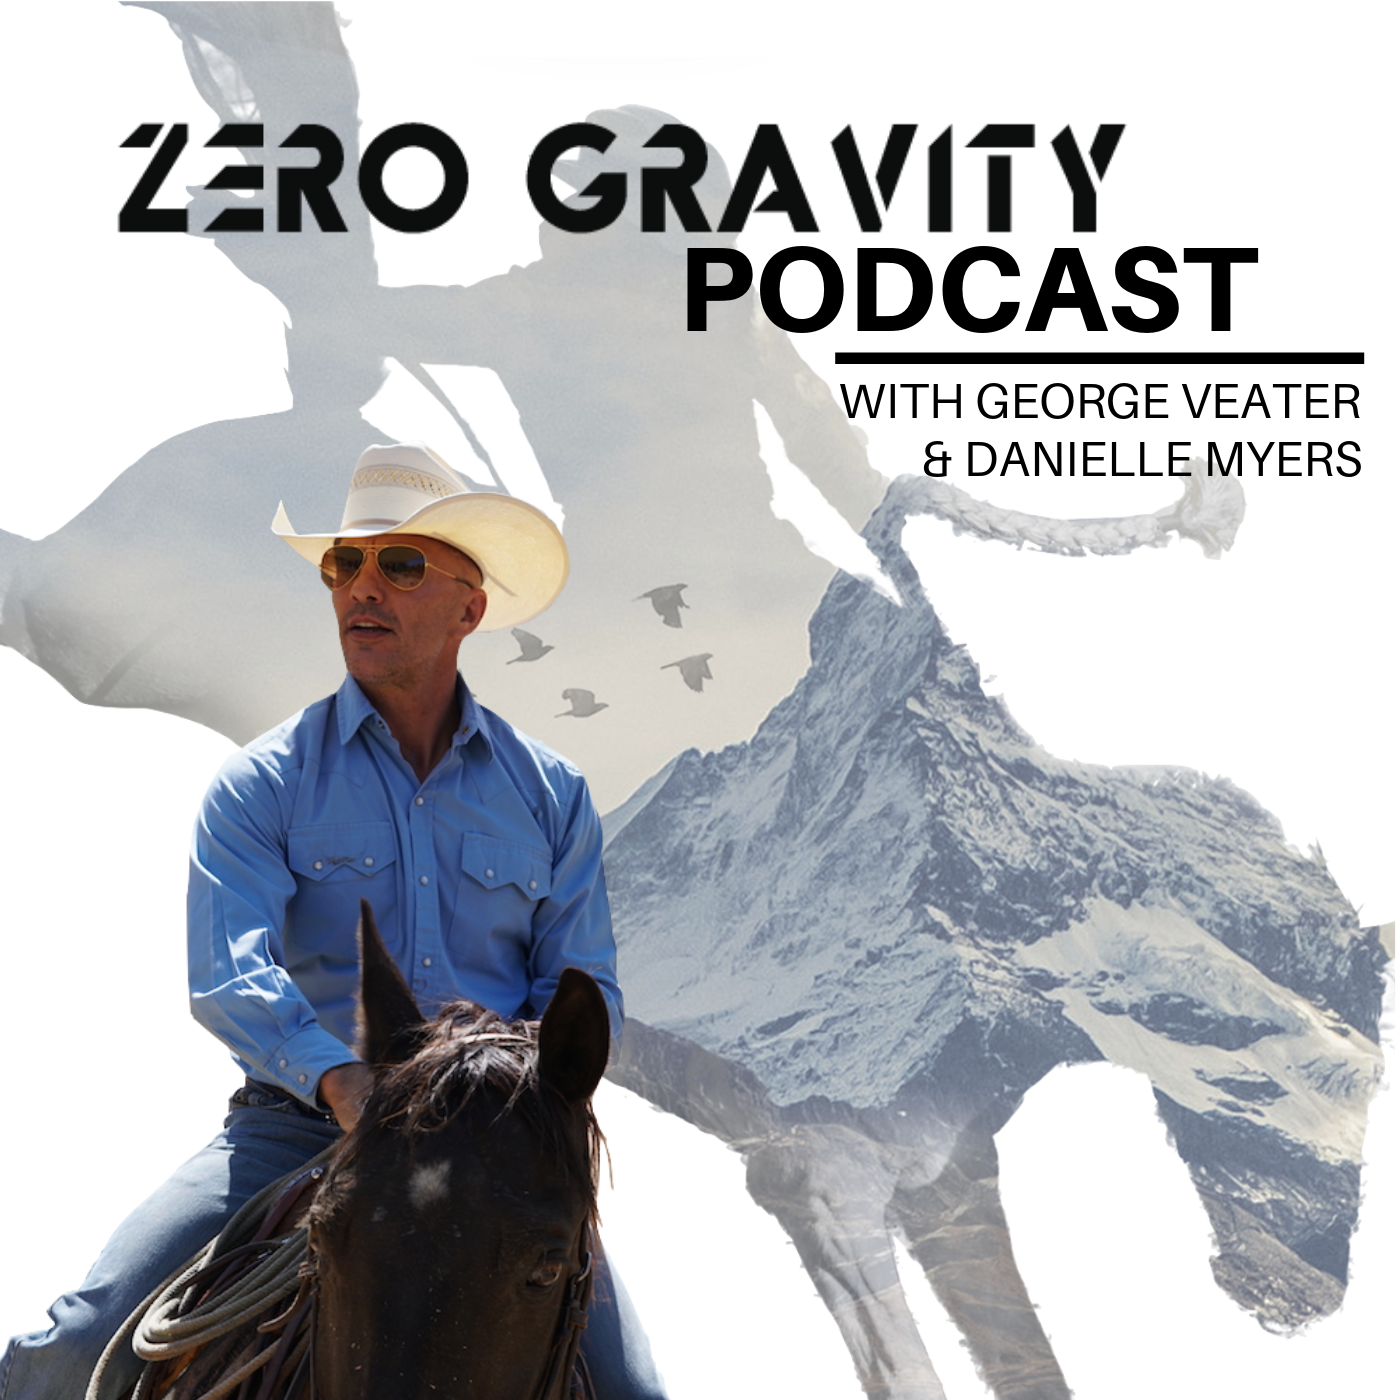 Zero Gravity Podcast with George Veater show art